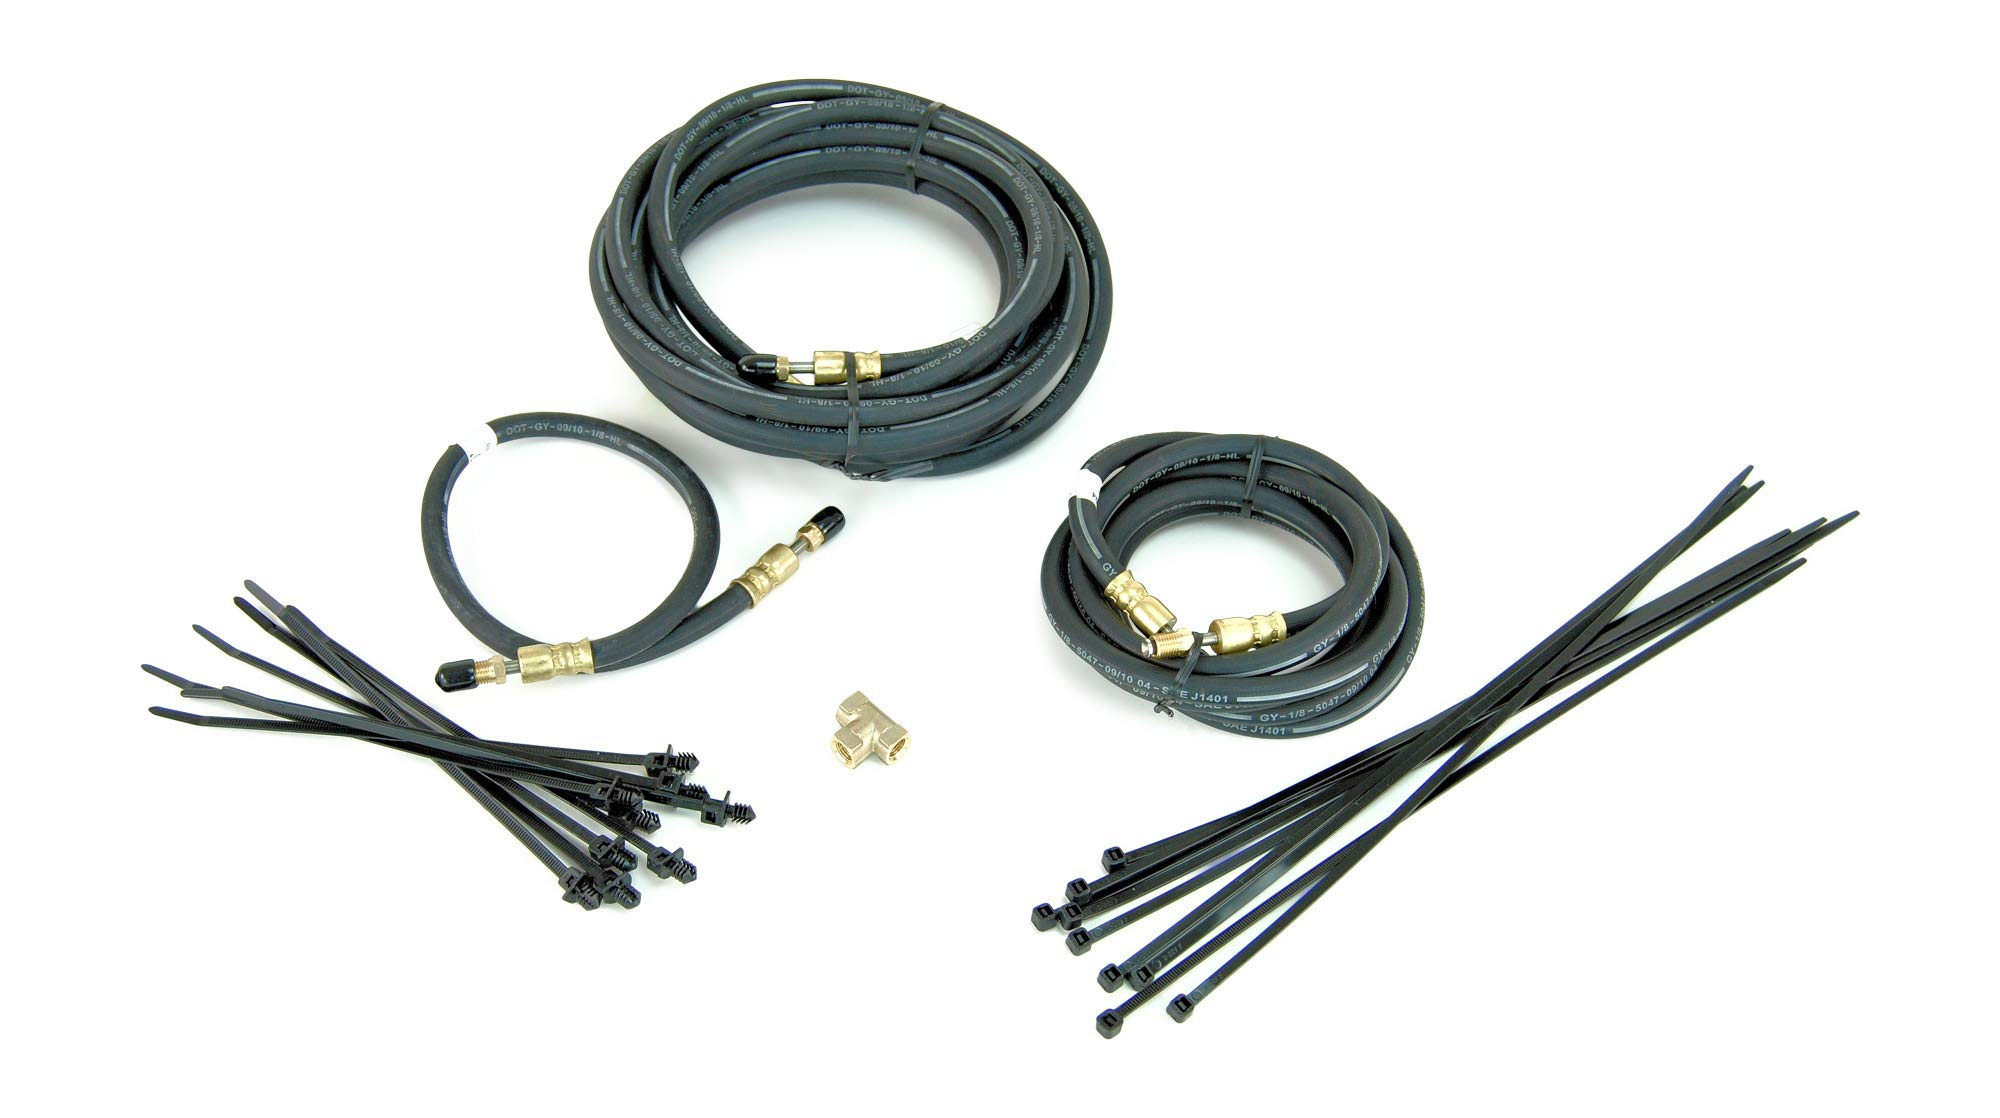 Sturdy Built Single Axle Trailer Brake Line Kit with Flexible Hydraulic Rubber Hoses by Sturdy Built